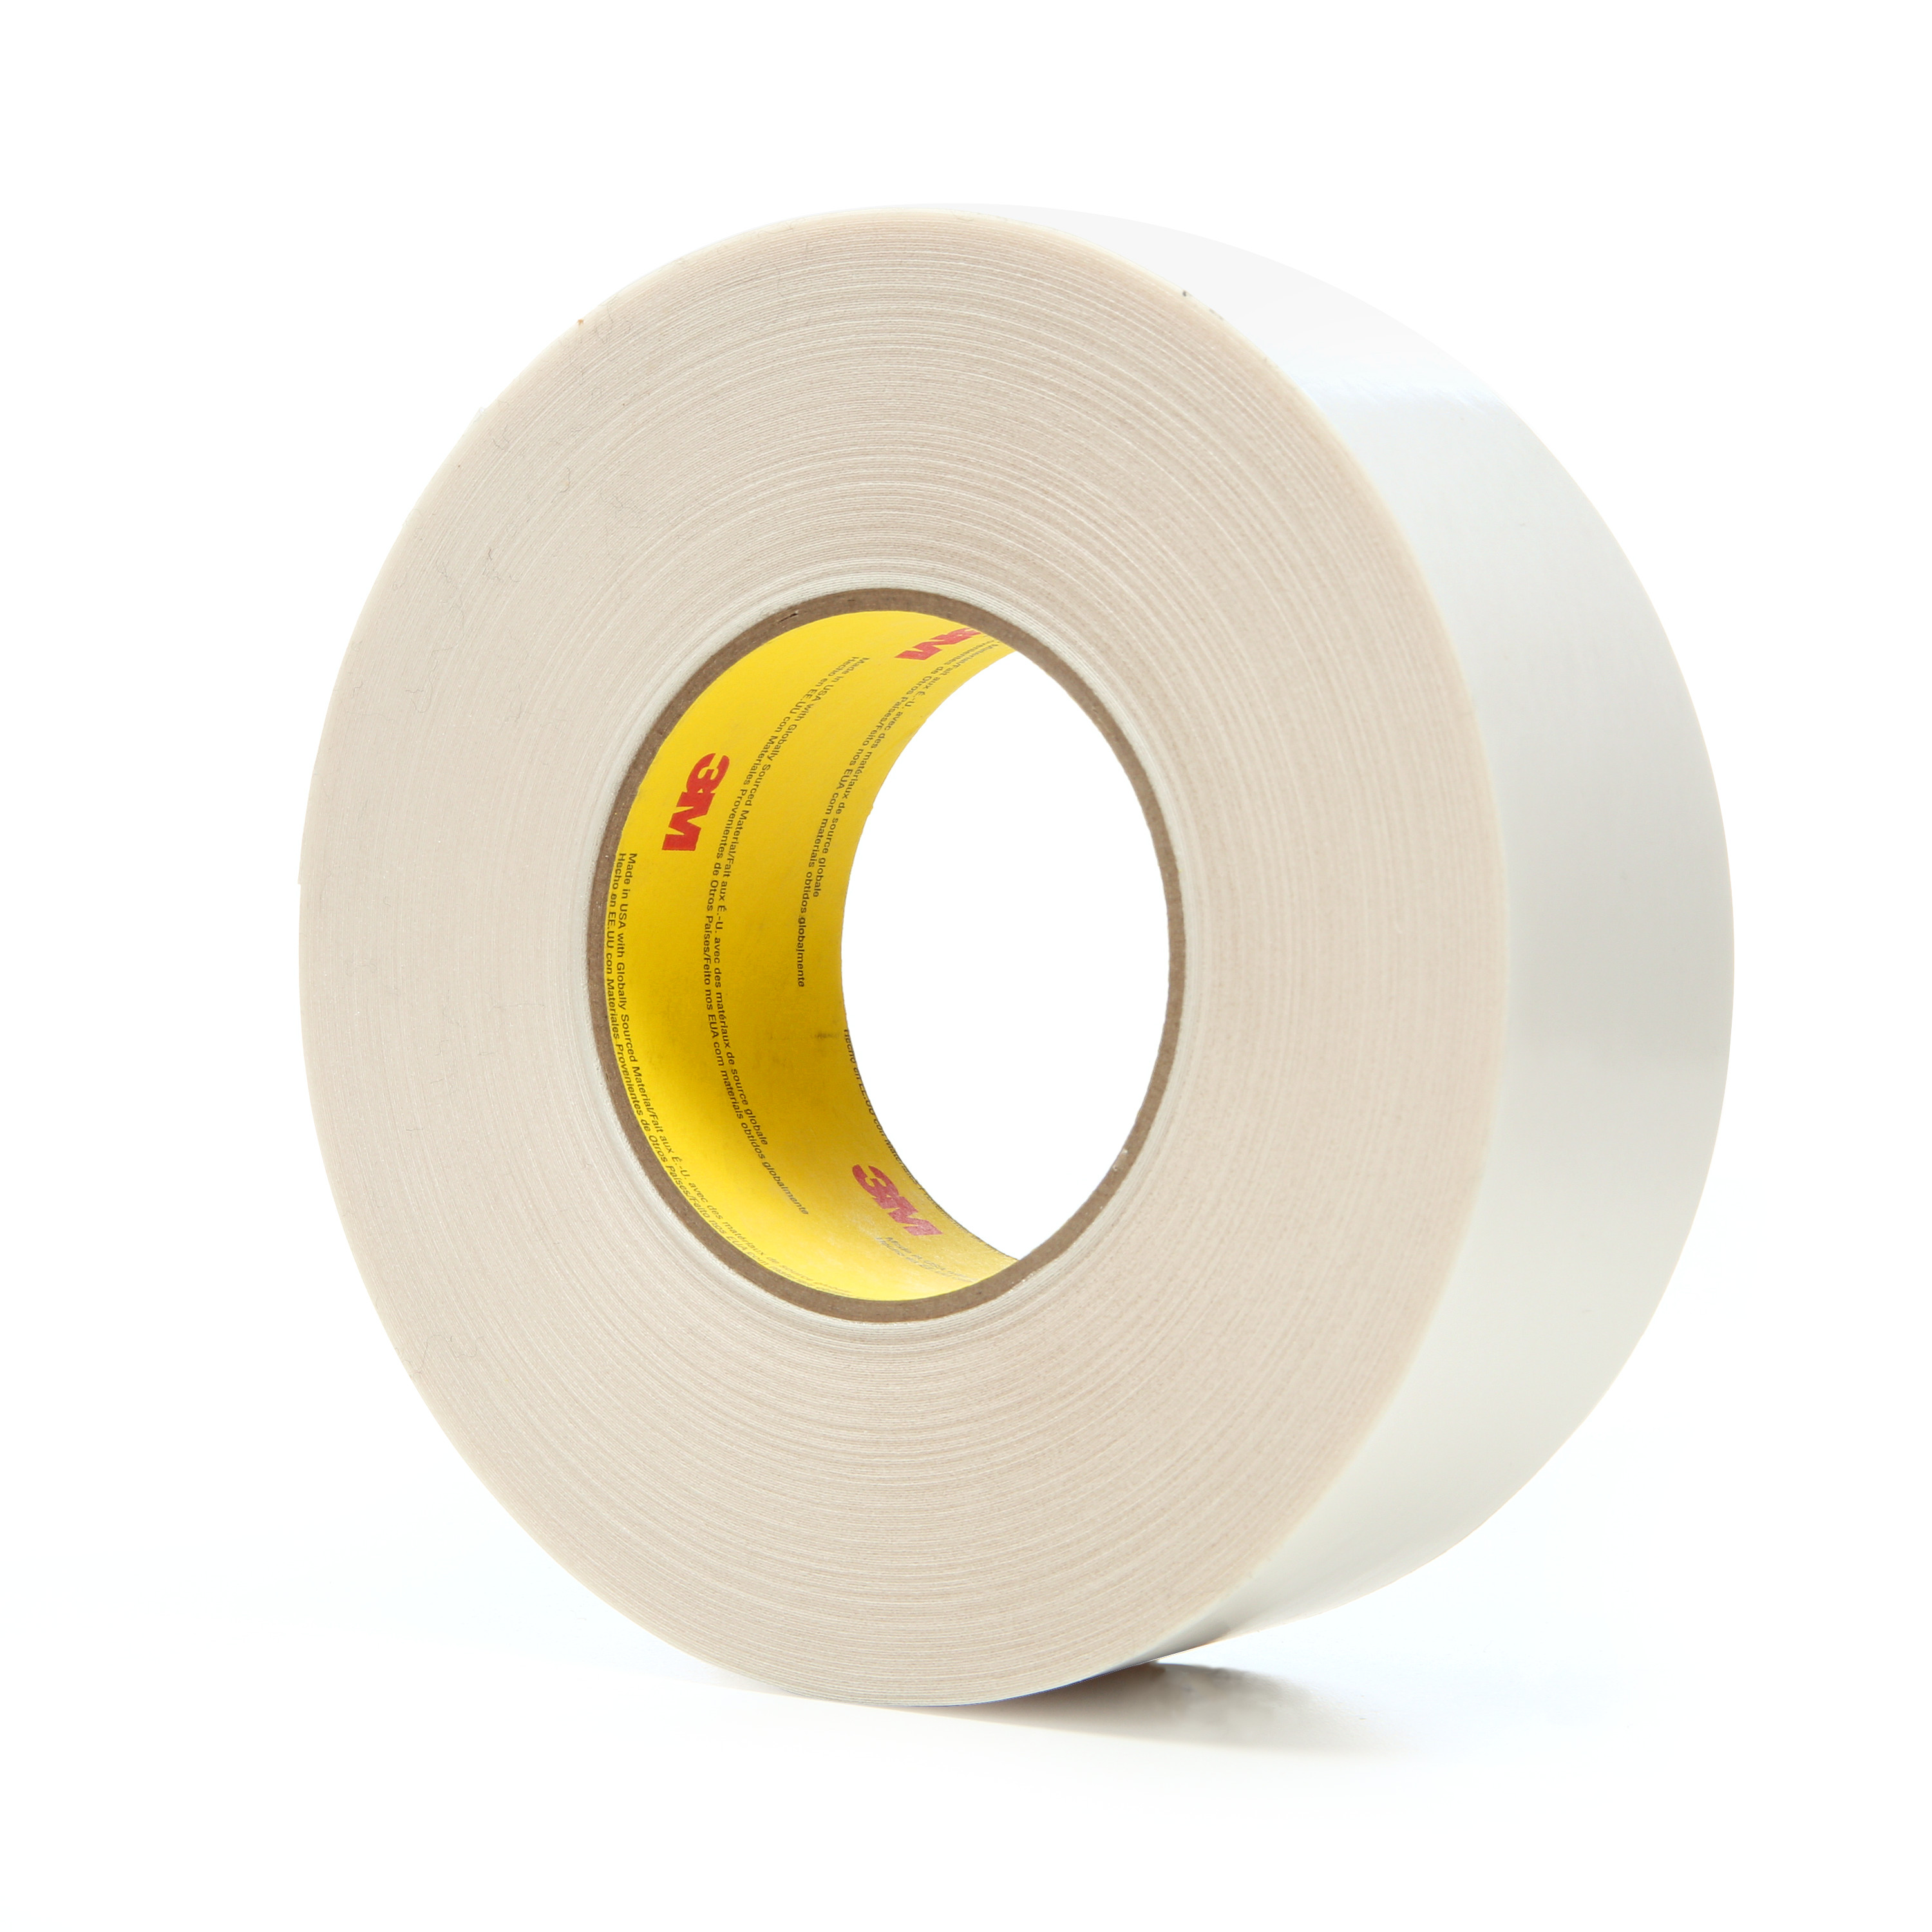 3M™ Double Coated Tape 9741, Clear, 48 mm x 55 m, 6.5 mil, 24 rolls per case